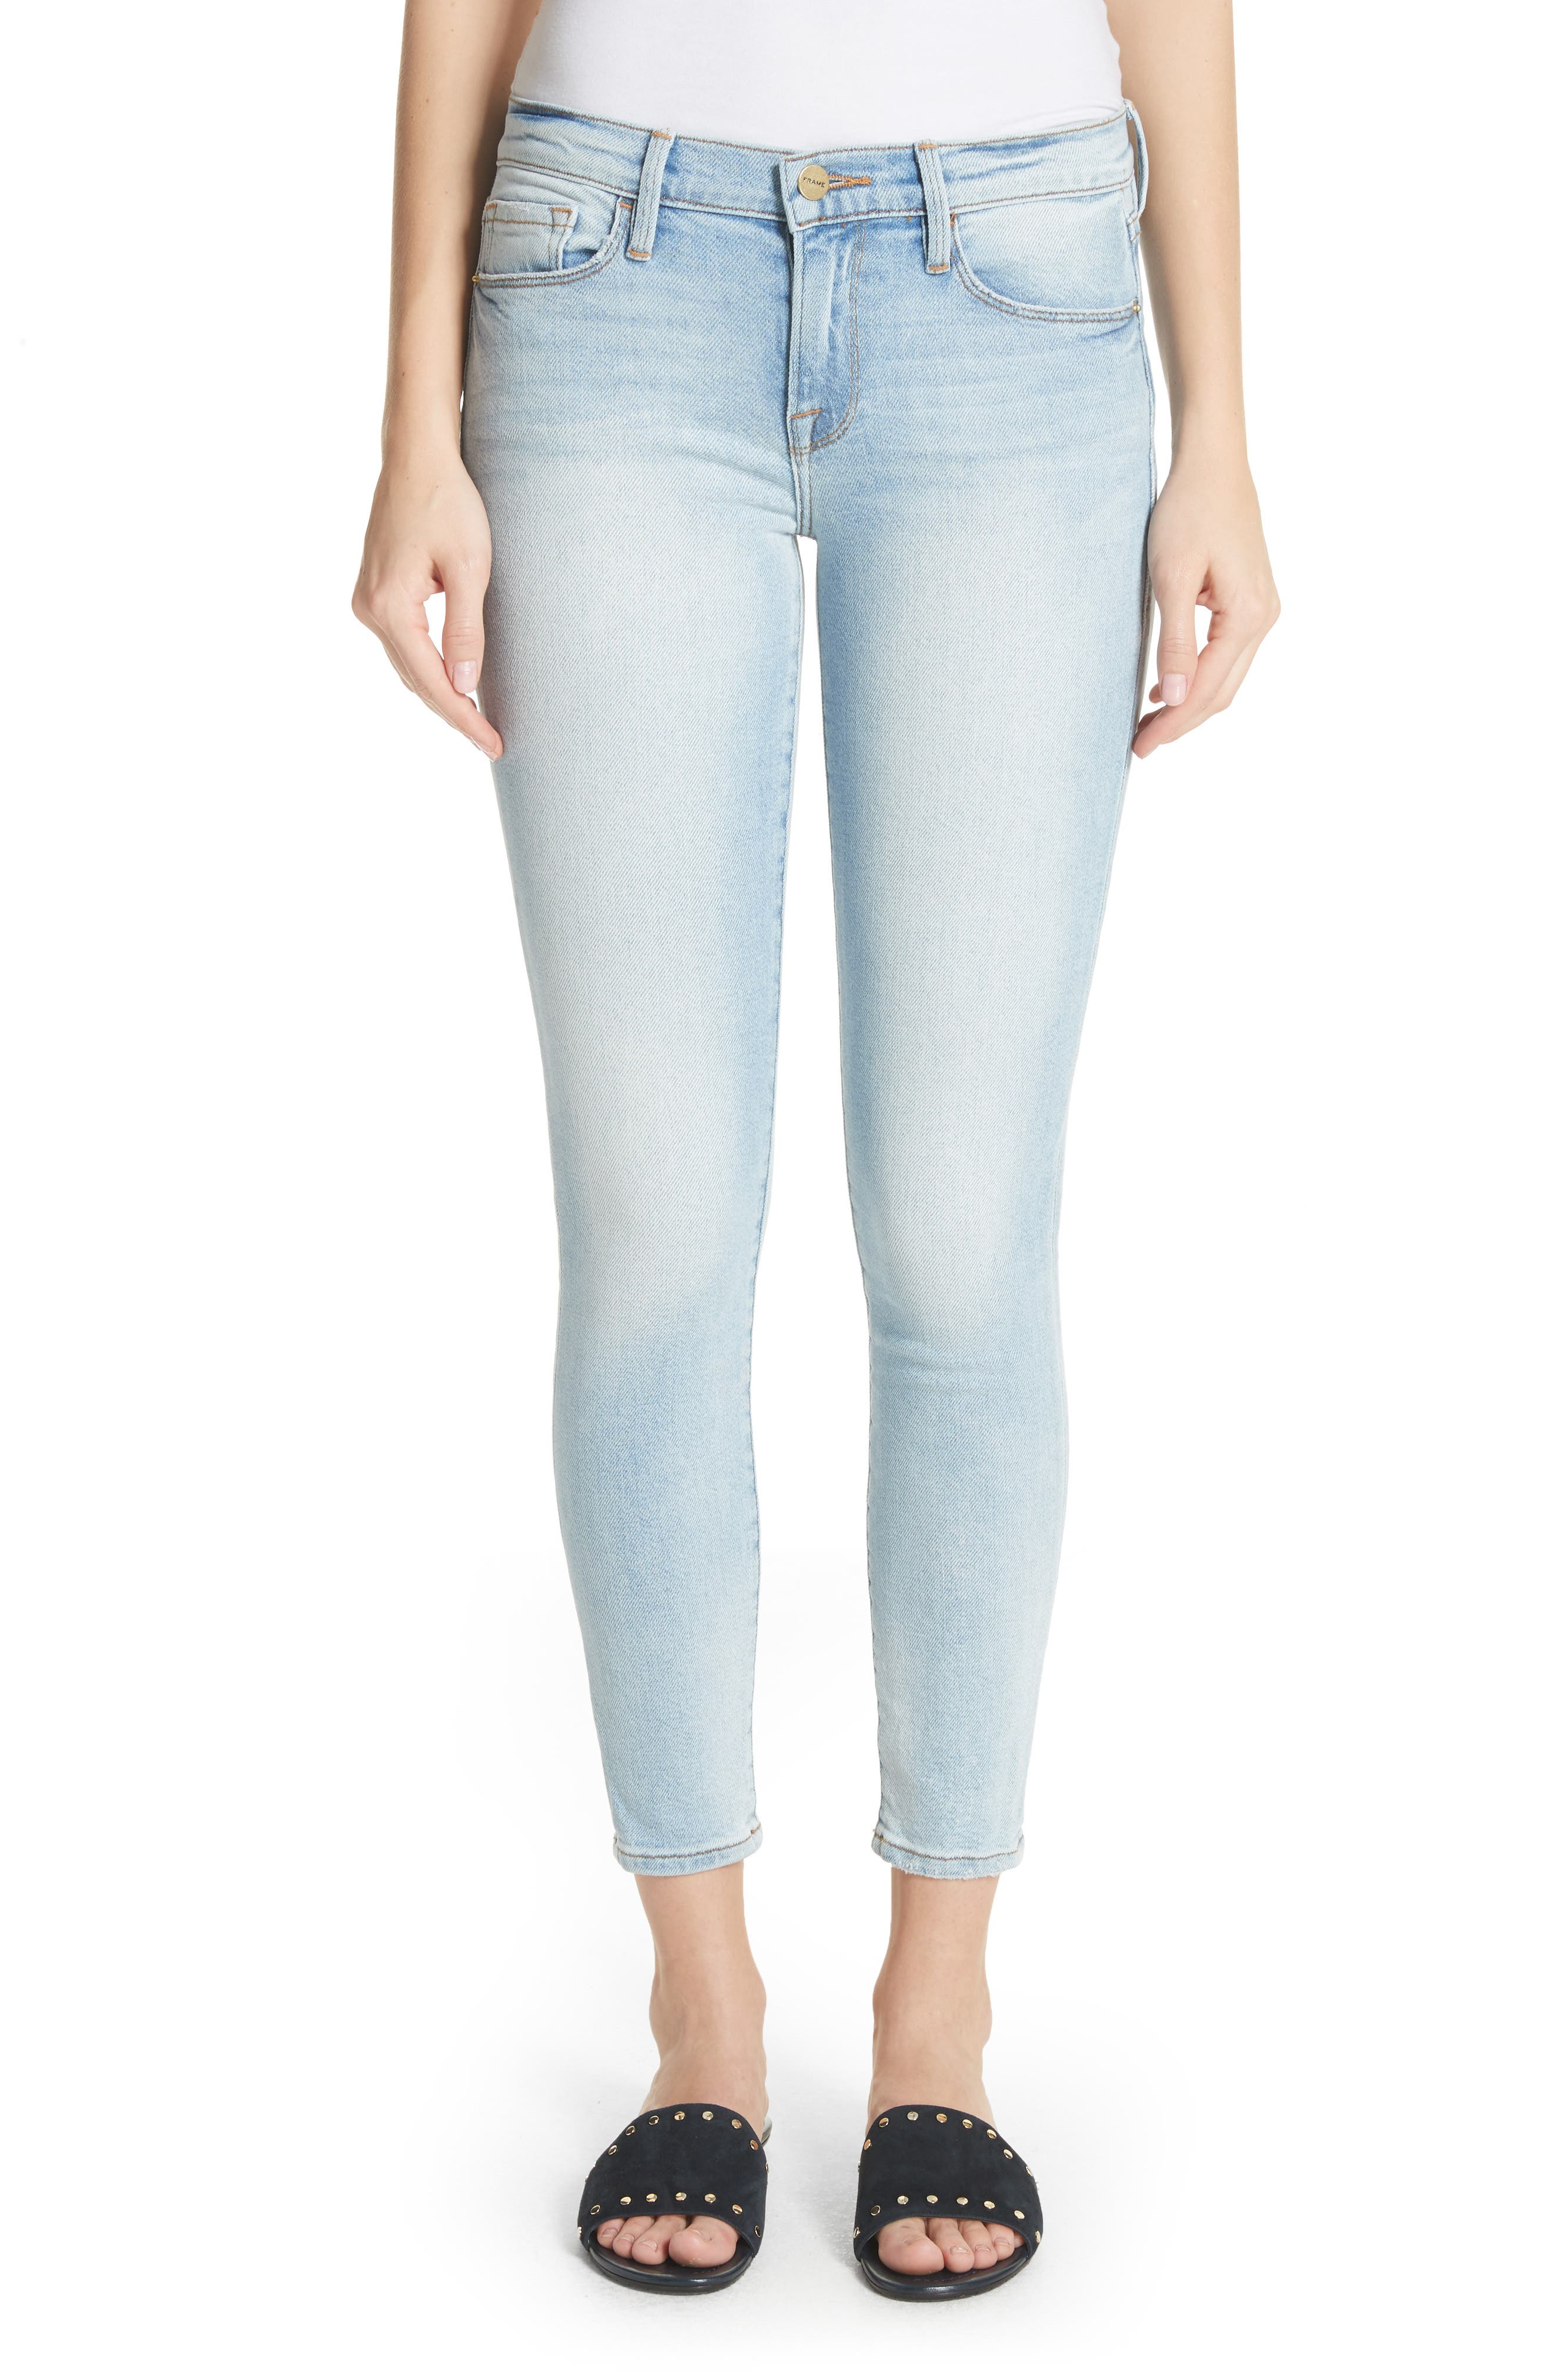 Le Skinny de Jeanne Ankle Jeans,                         Main,                         color, Adeline